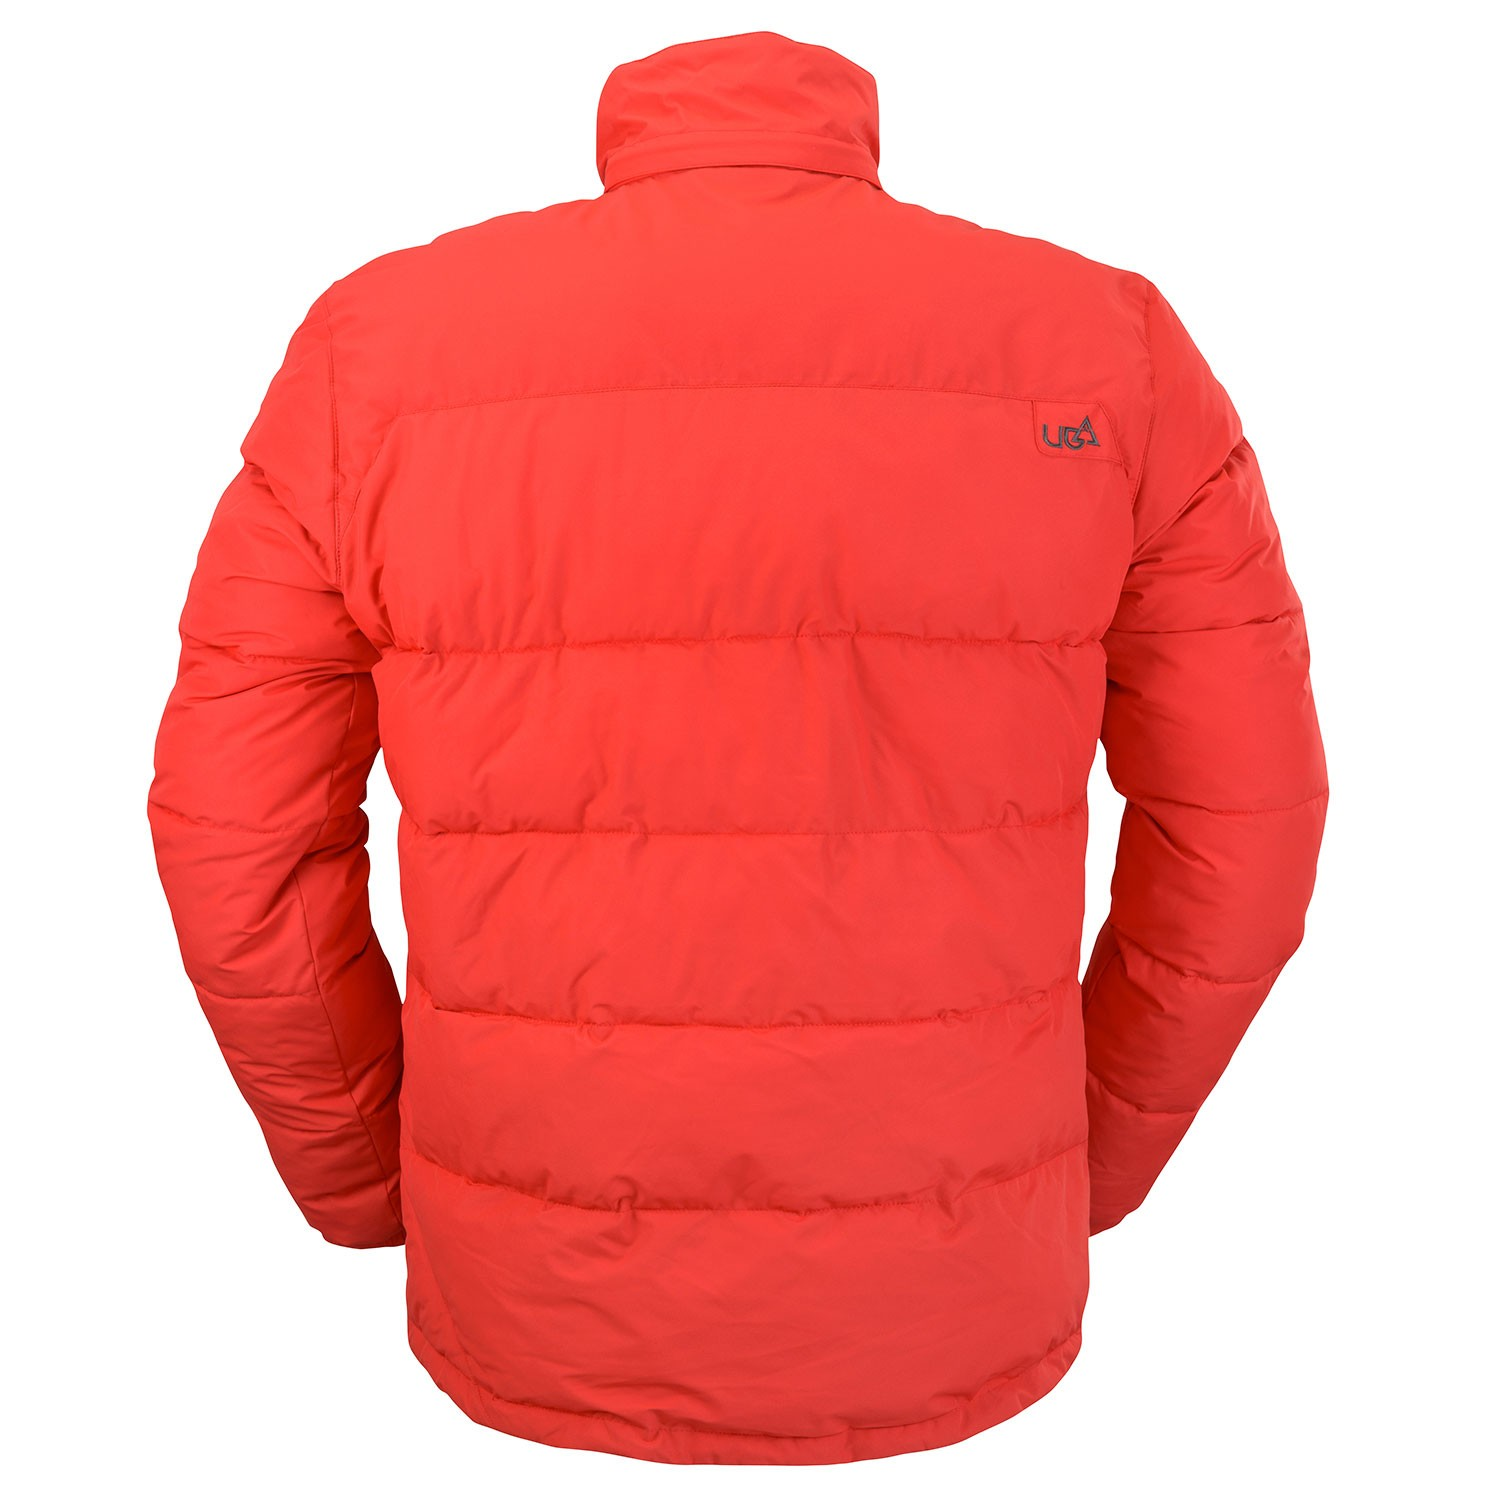 Mens Red Puffer Jacket Tocan Free Delivery Over 163 20